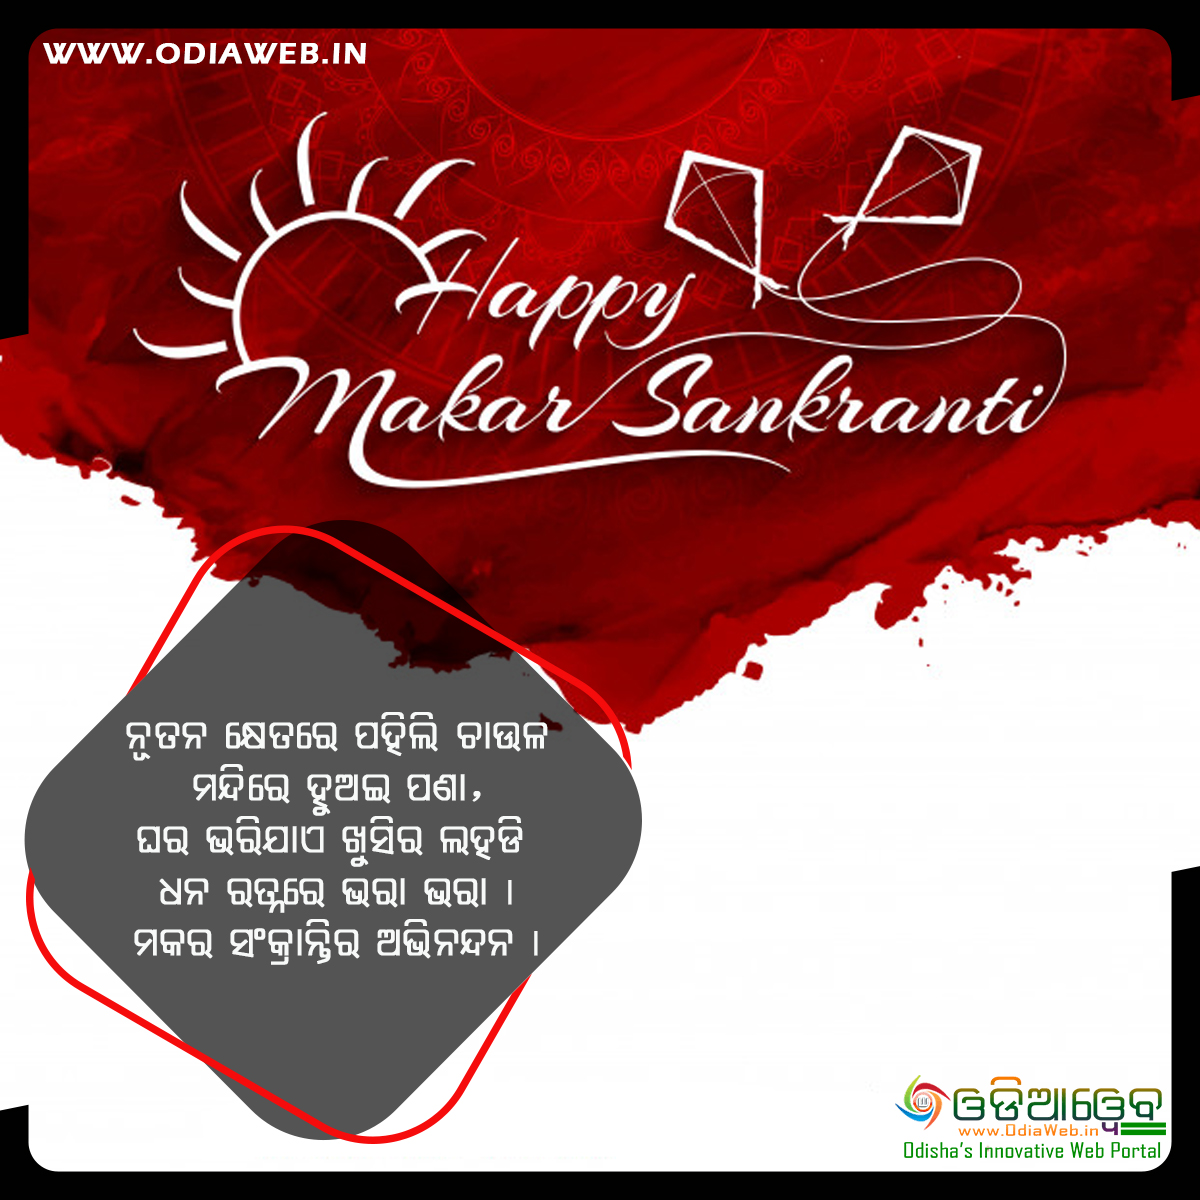 Makar Sankranti 2021 in Odia With Images